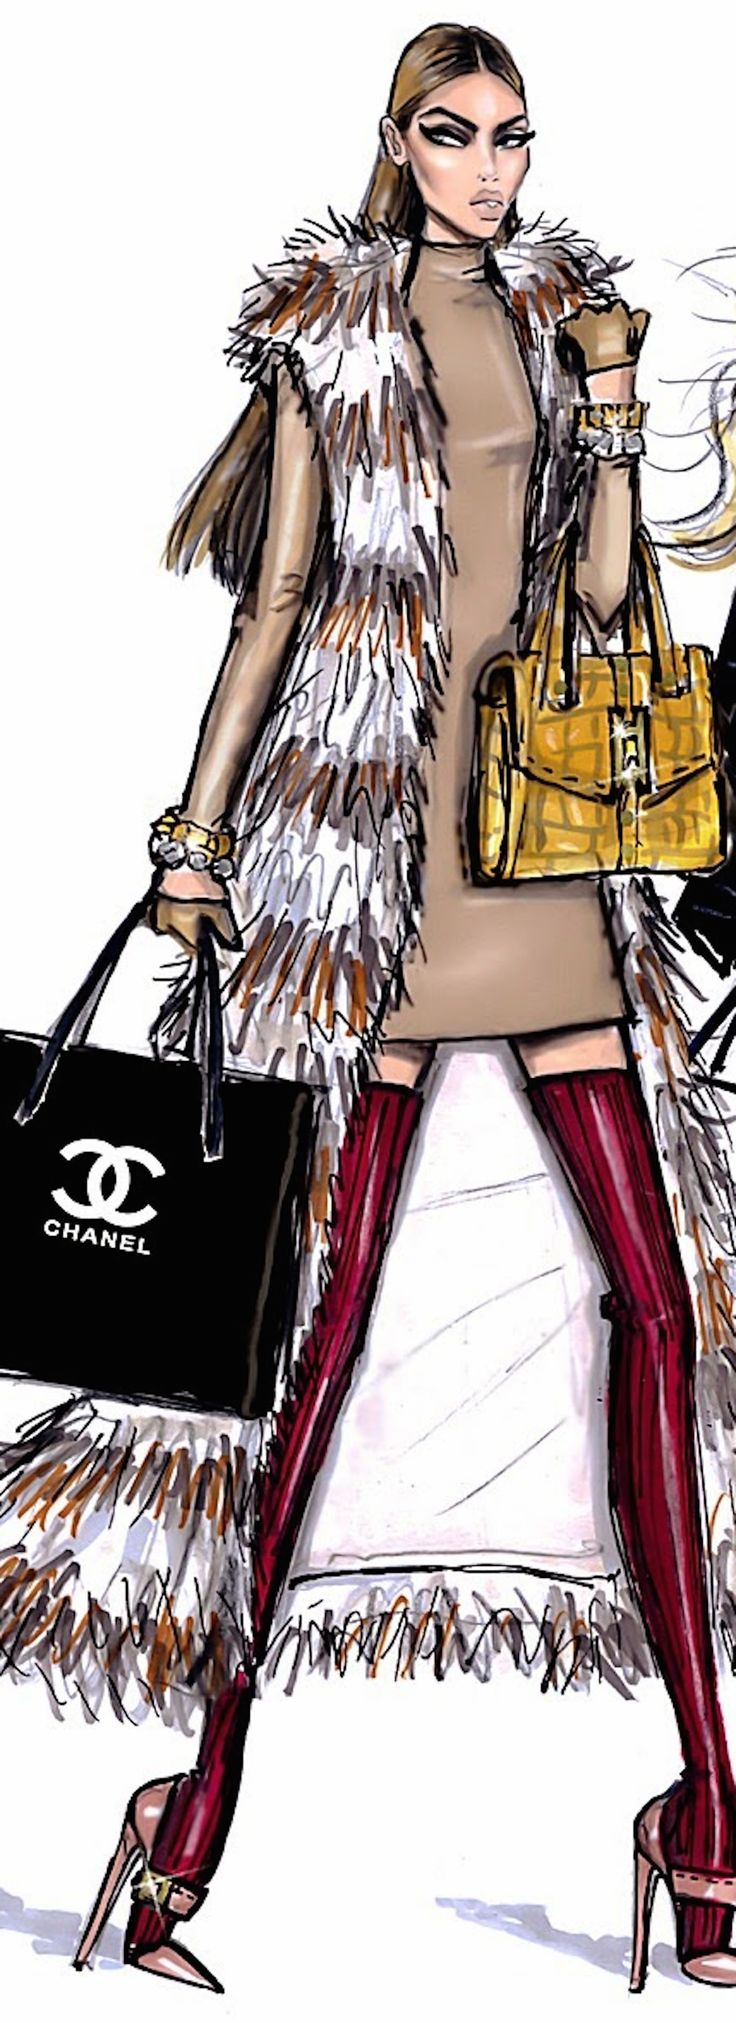 How to fashion illustrate 97